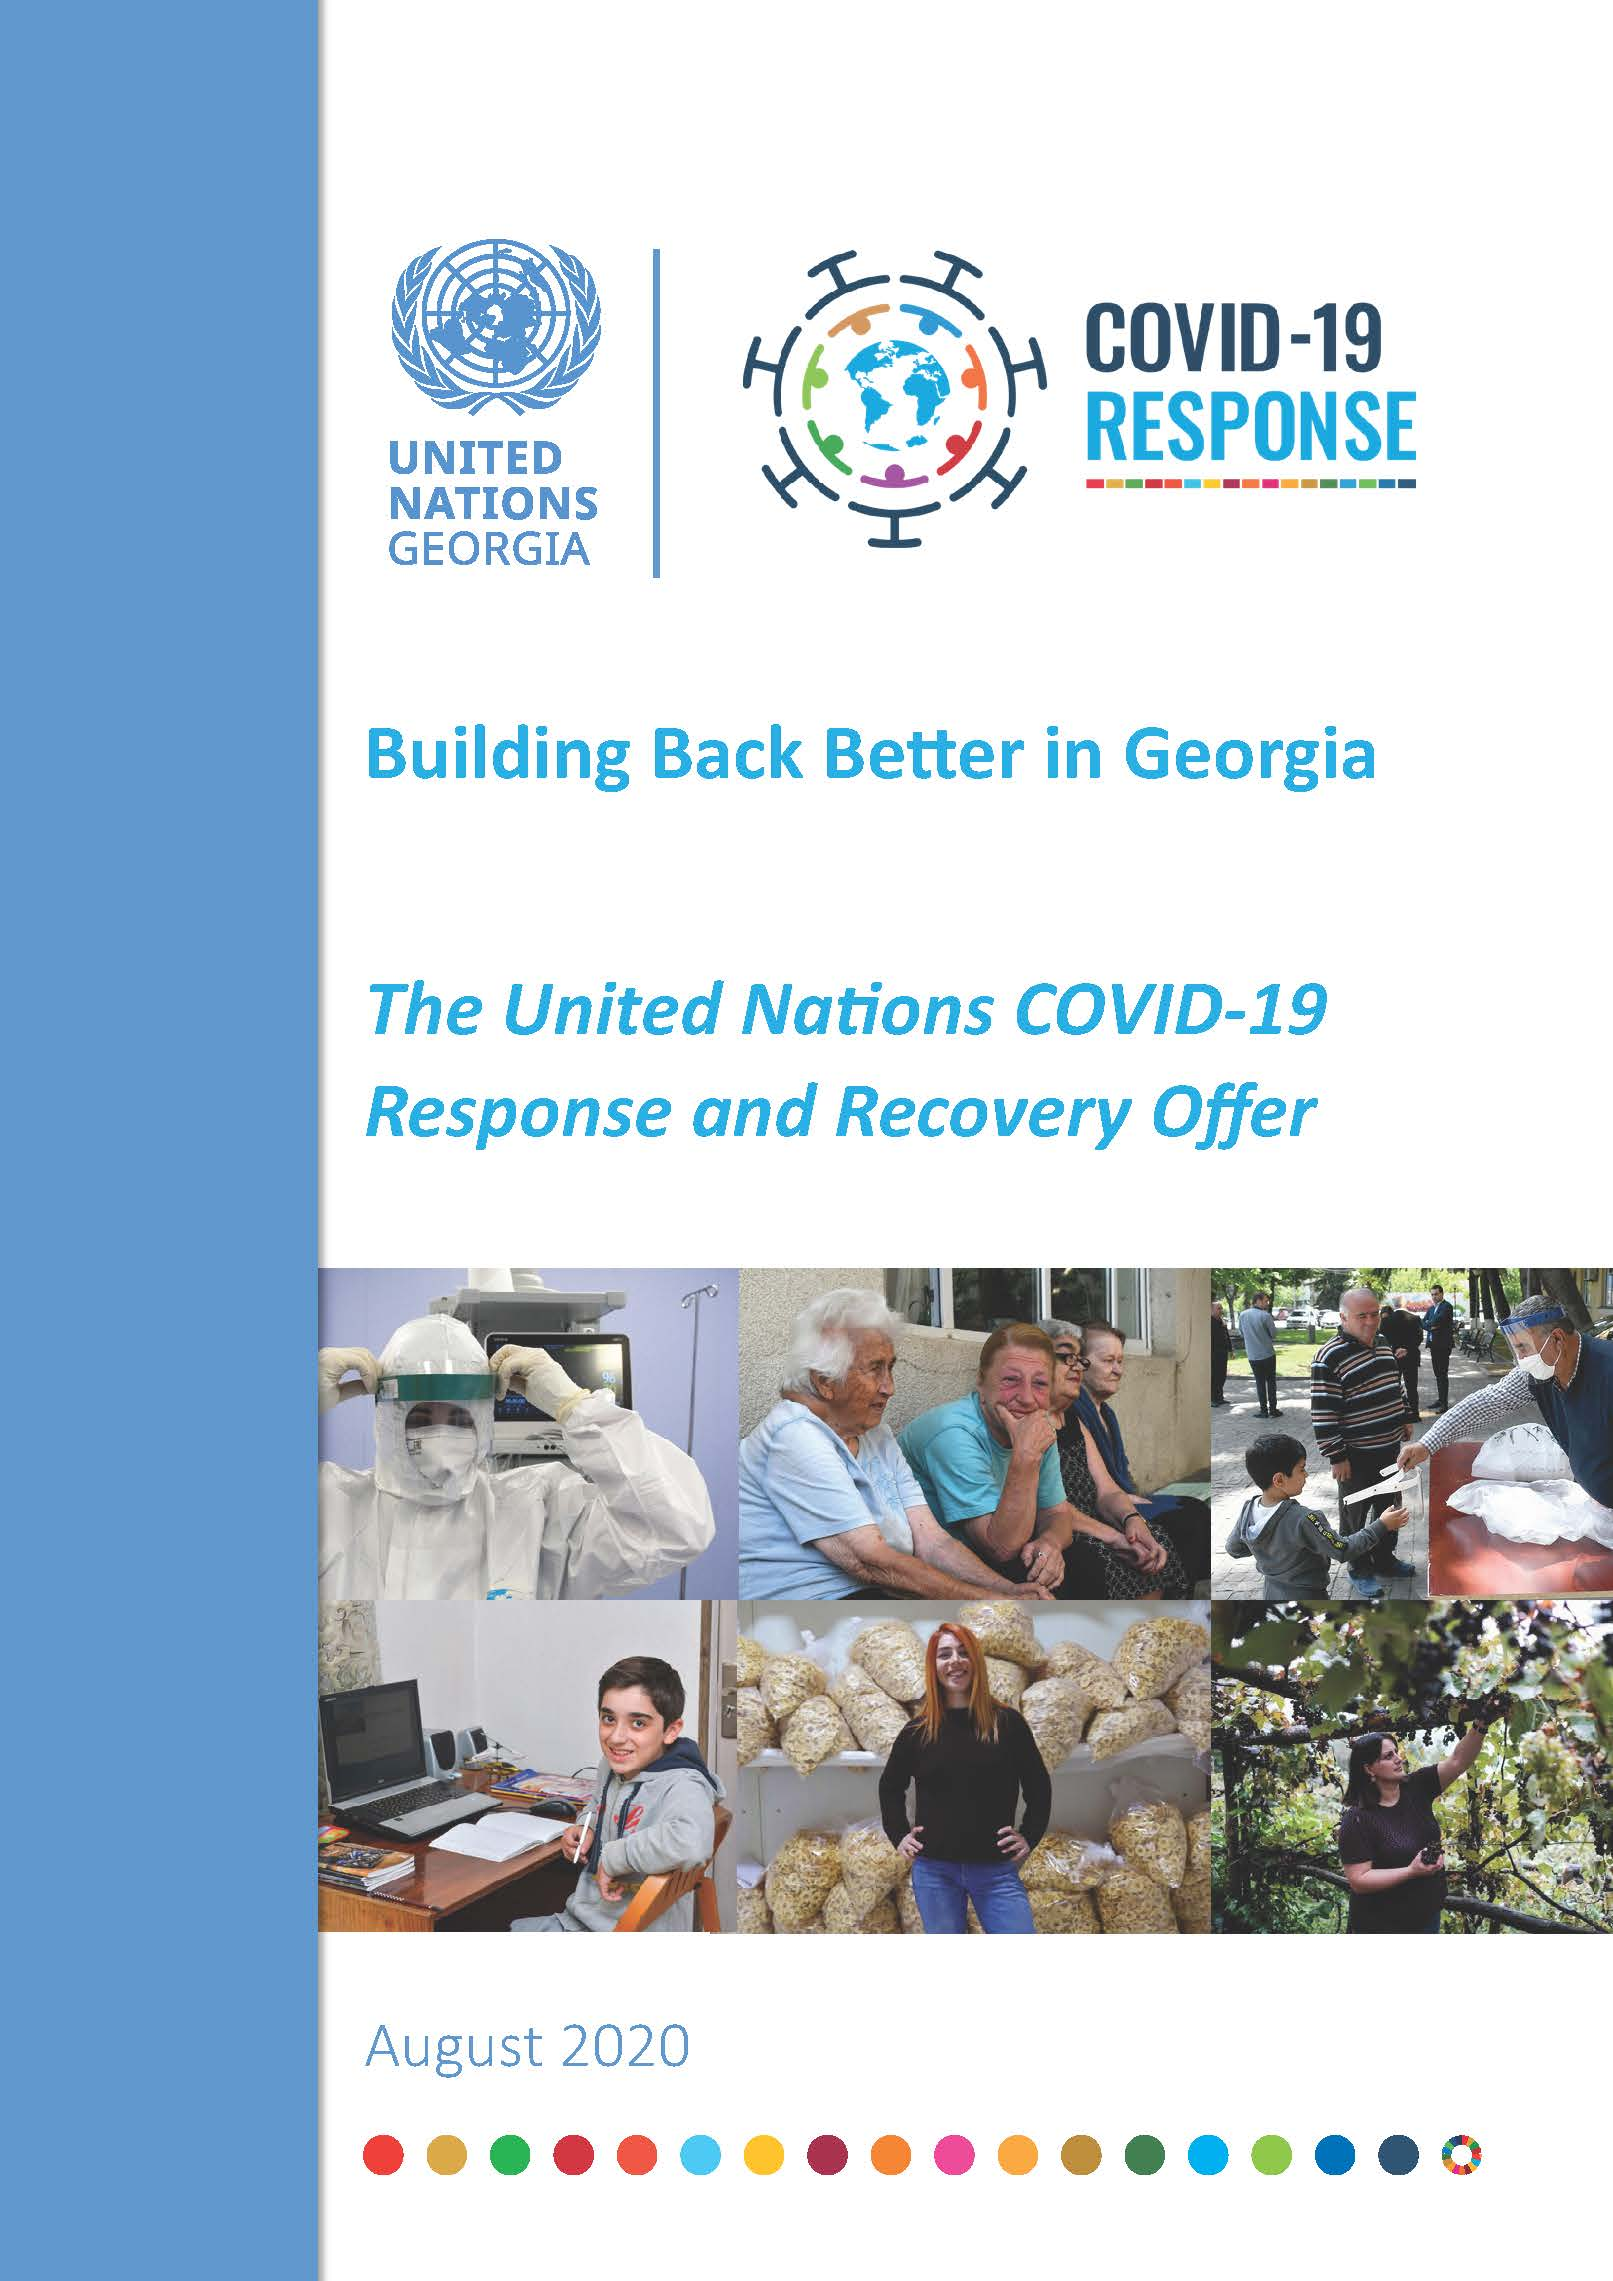 Building Back Better in Georgia: The United Nations COVID-19 Response and Recovery Offer